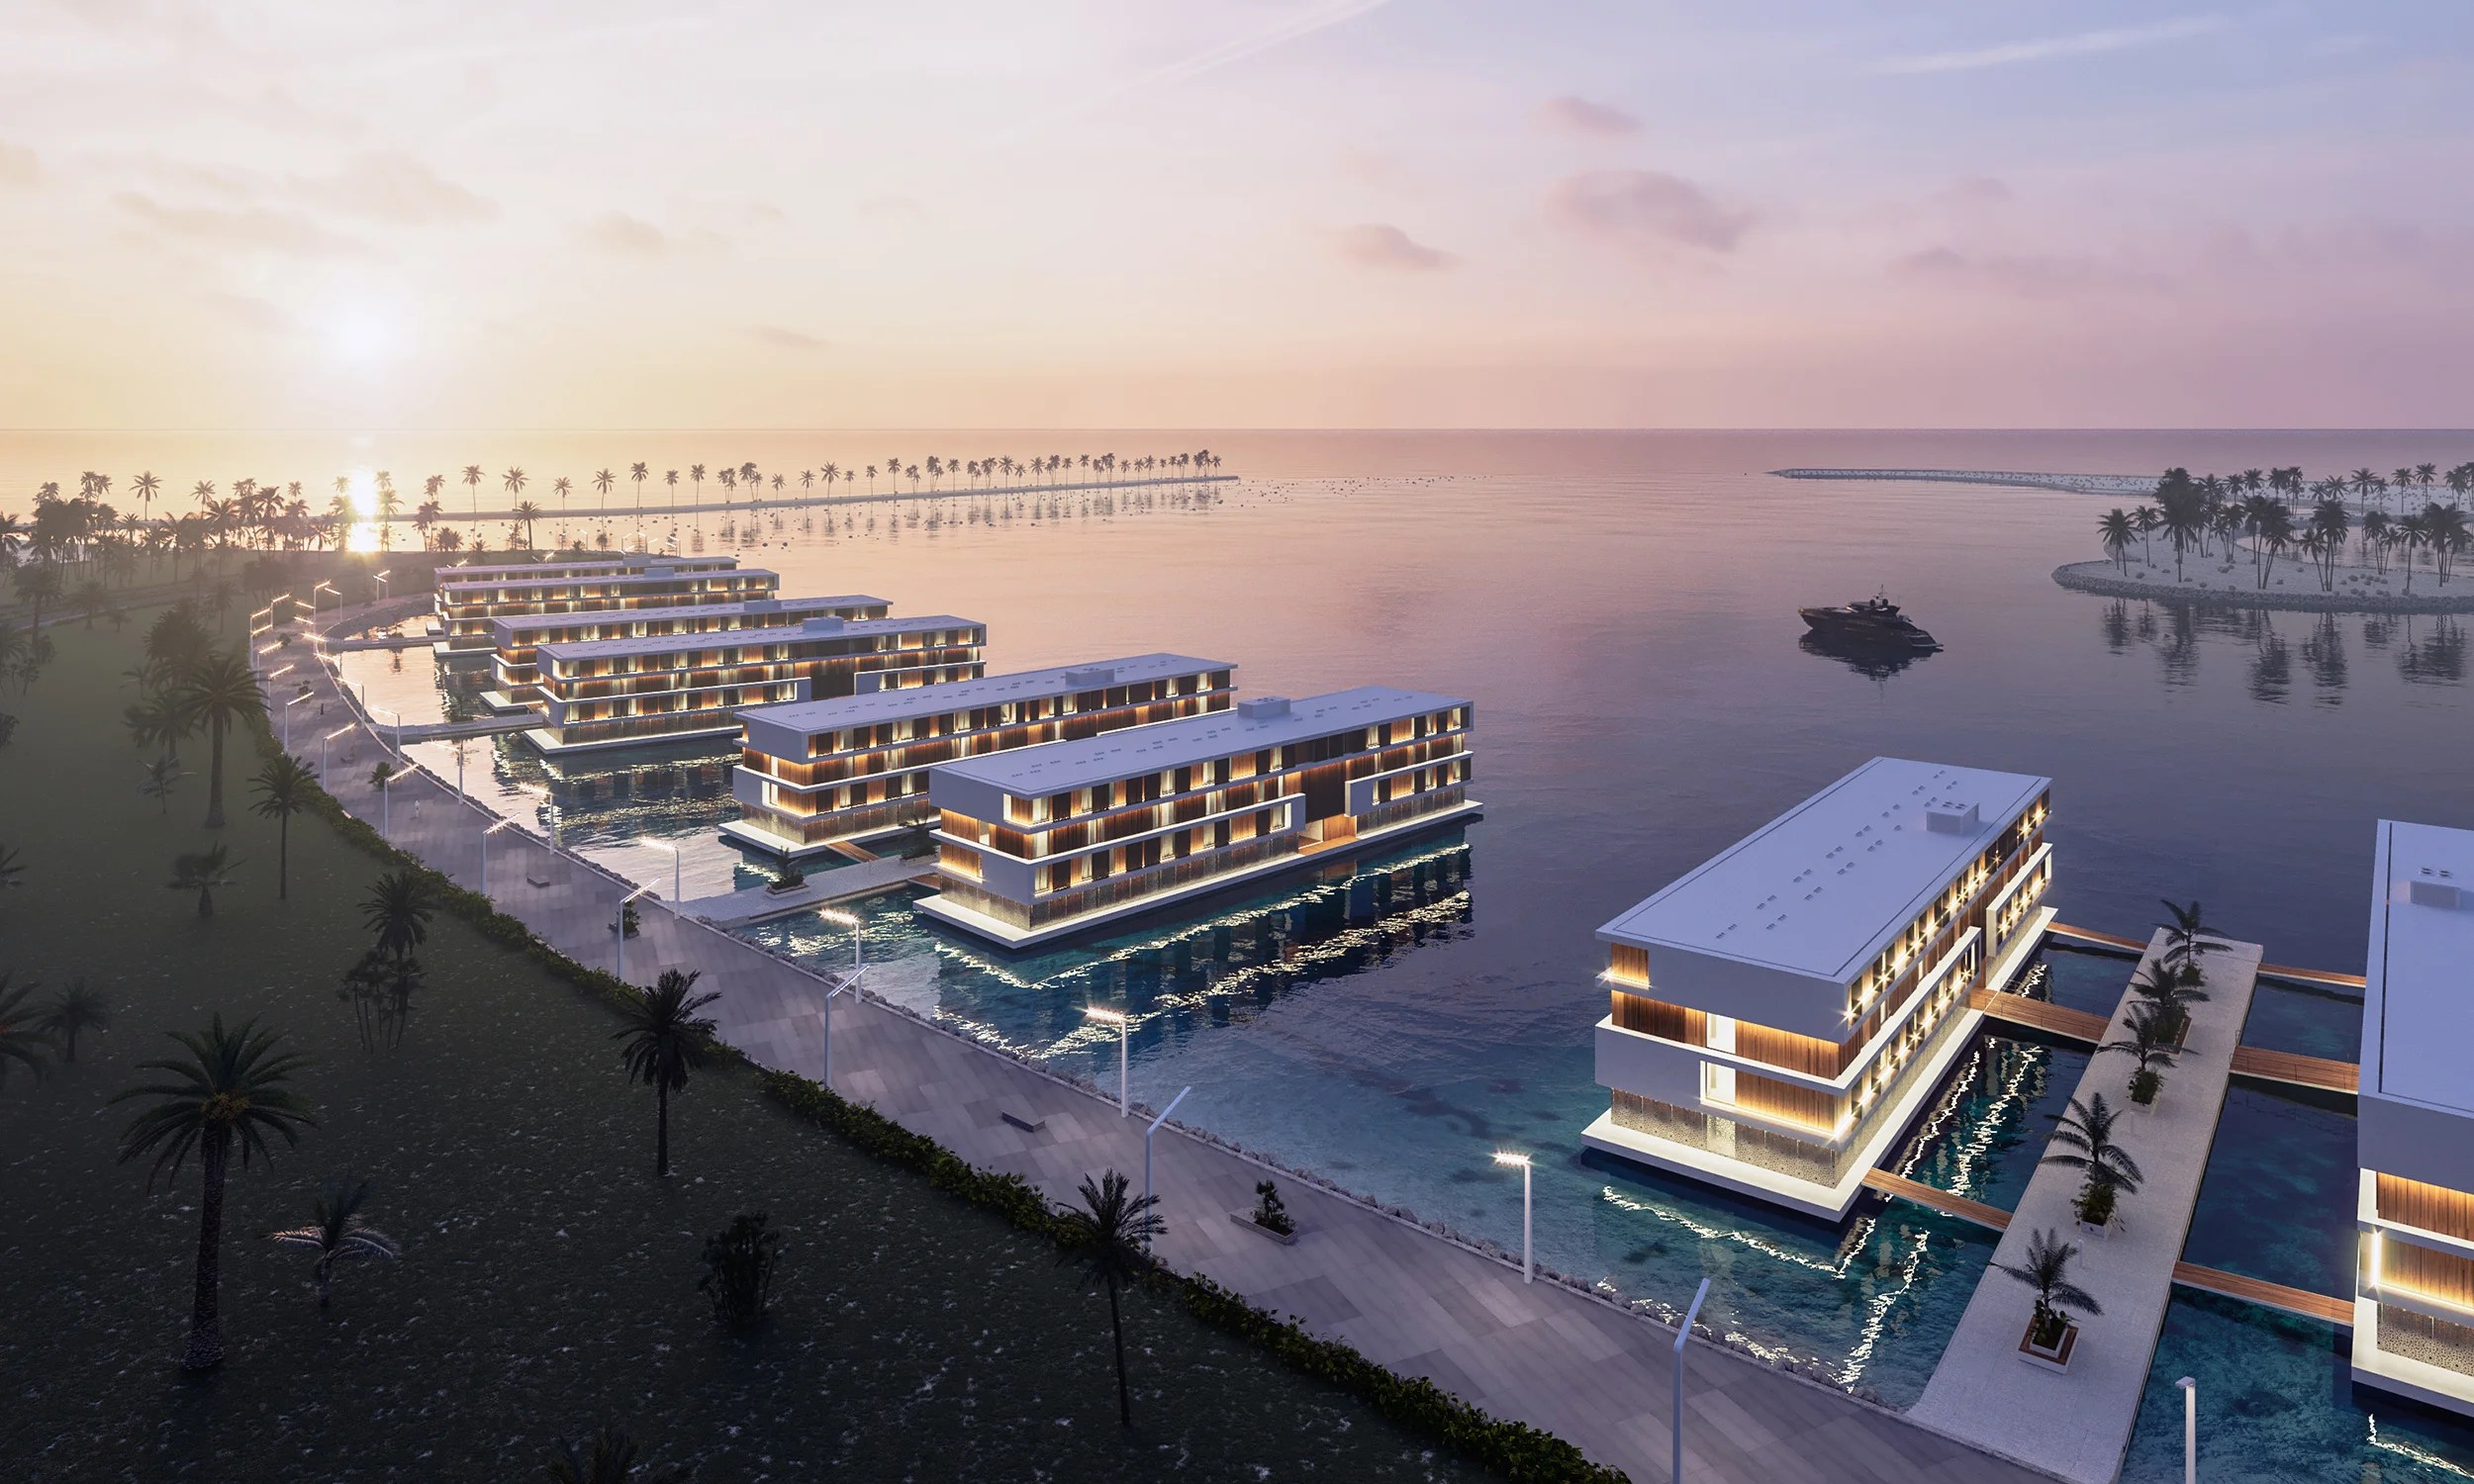 Stay in a floating hotel near Doha for the 2022 FIFA World Cup